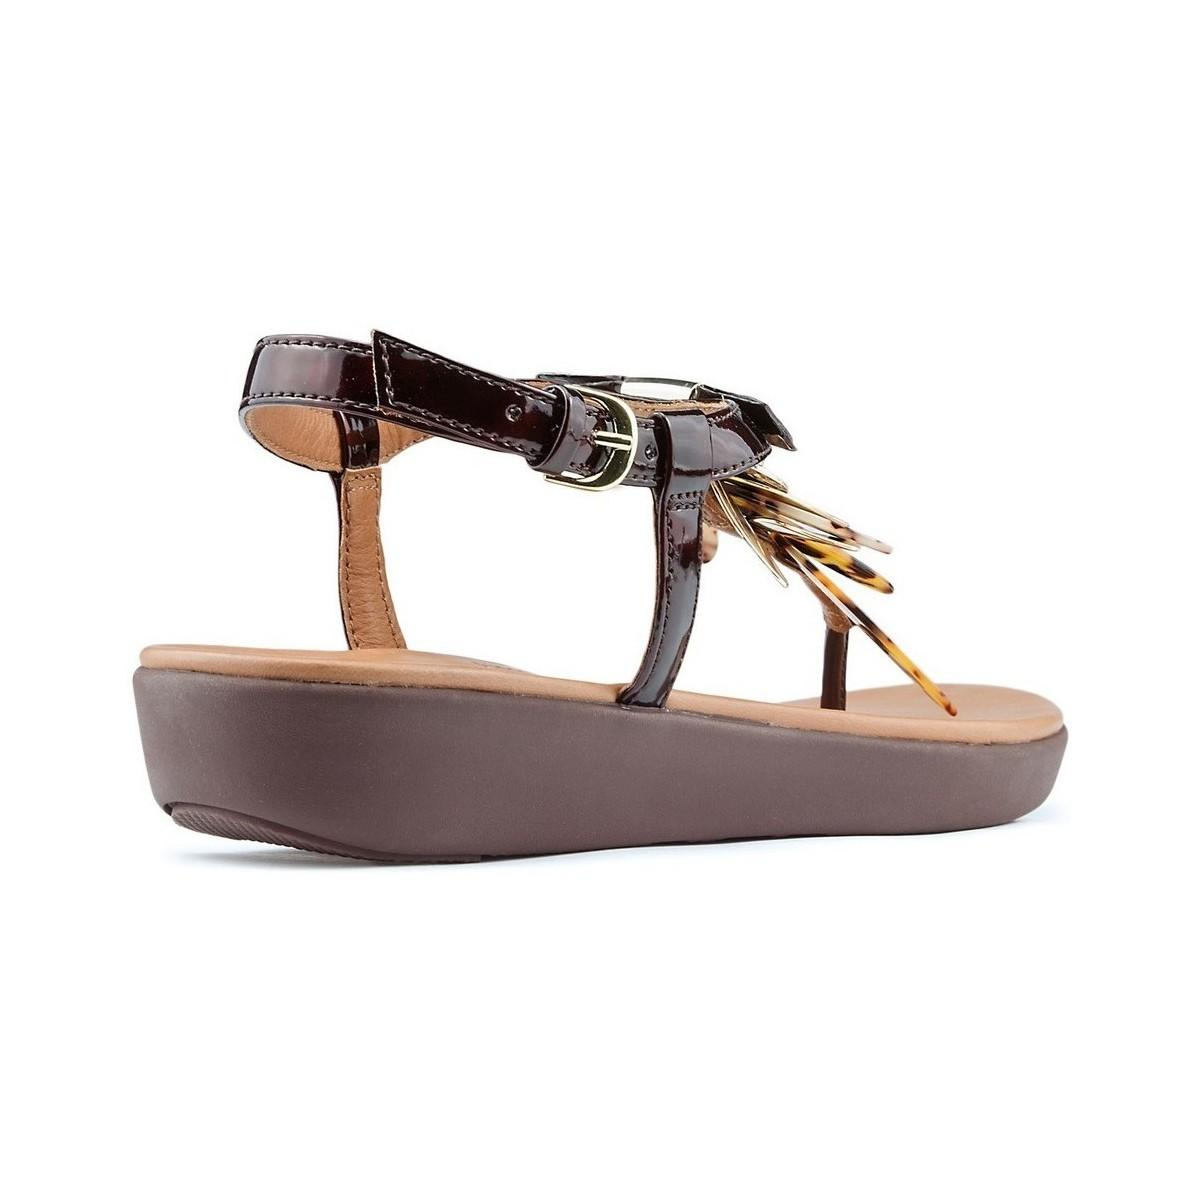 Fitflop Sandals Tia Dragonfly Women's